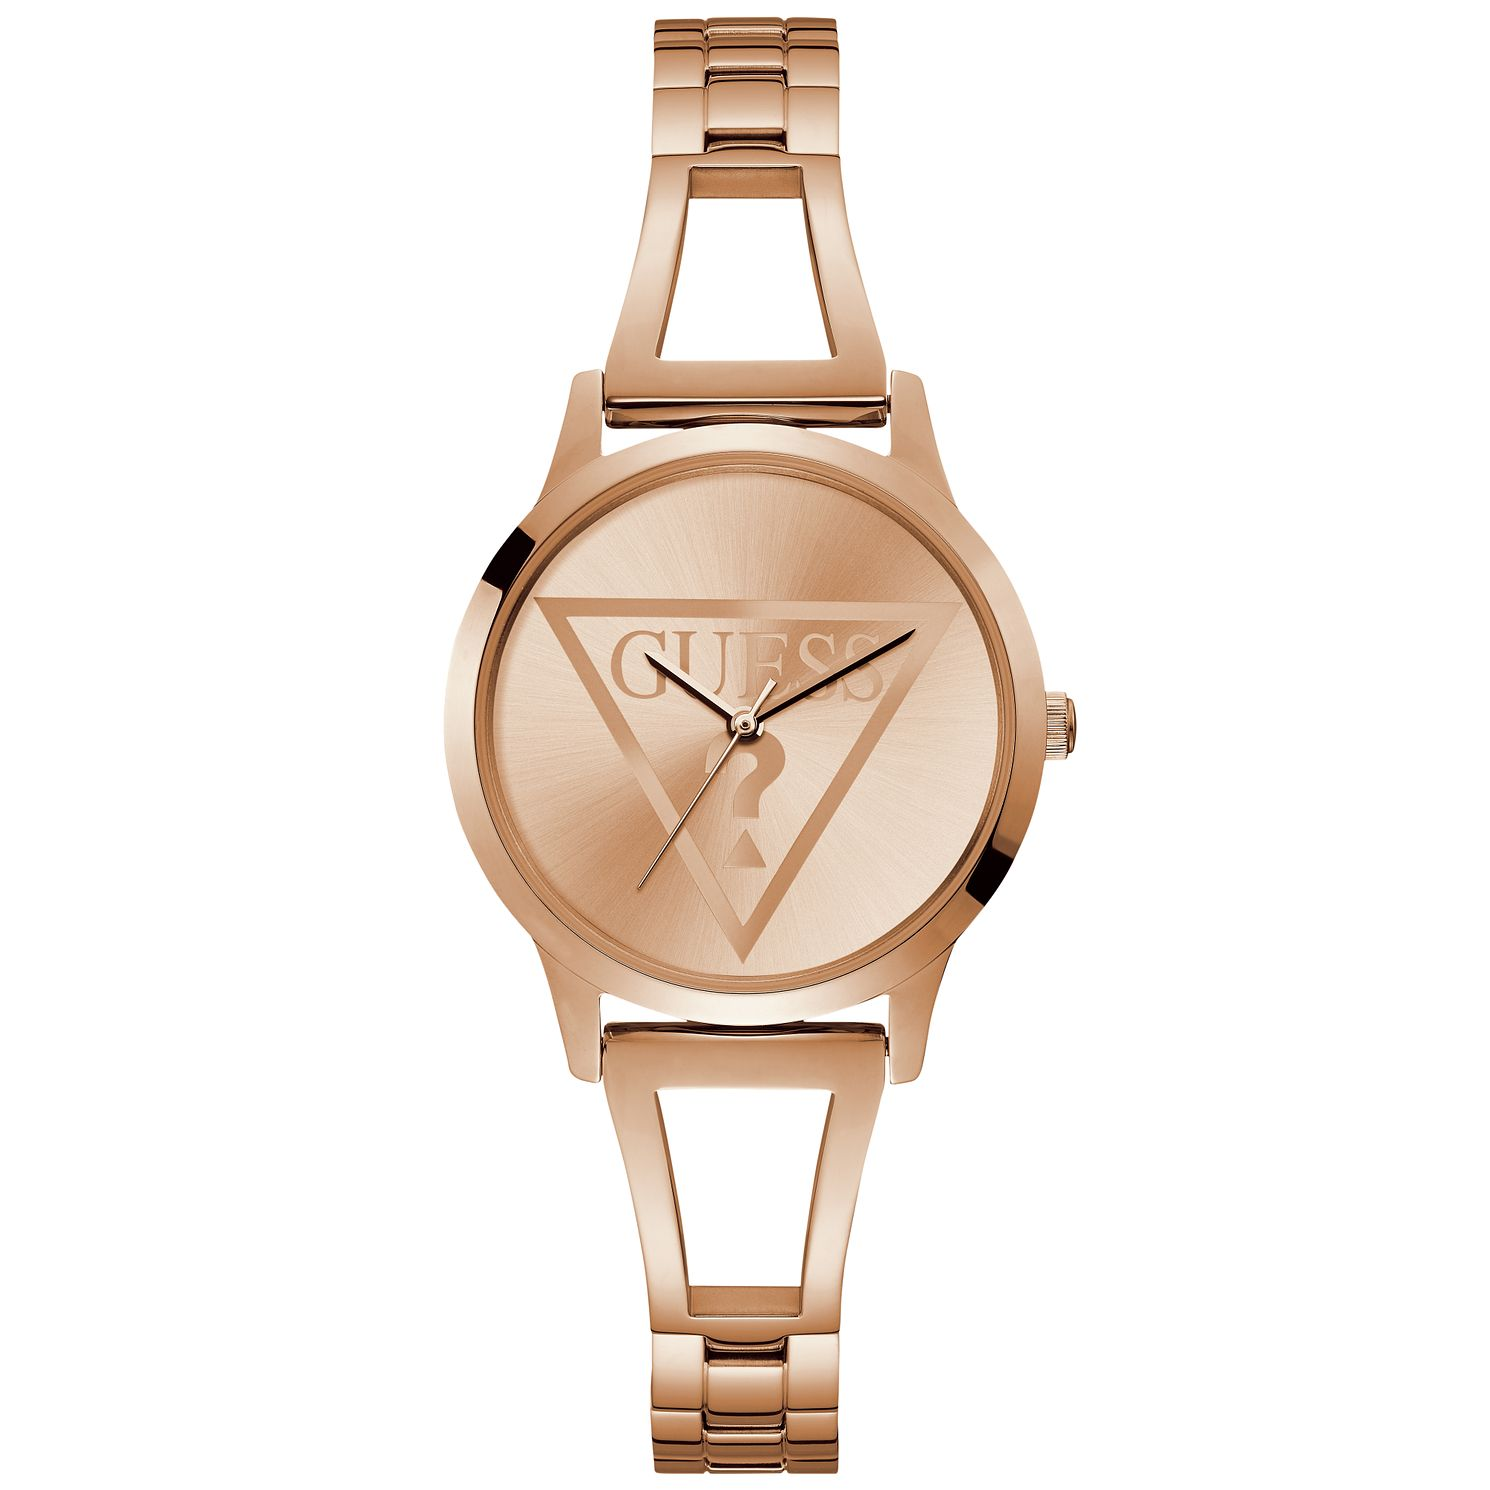 Guess Ladies' Rose Gold Tone Cut-Out Bracelet Watch - Product number 9654259